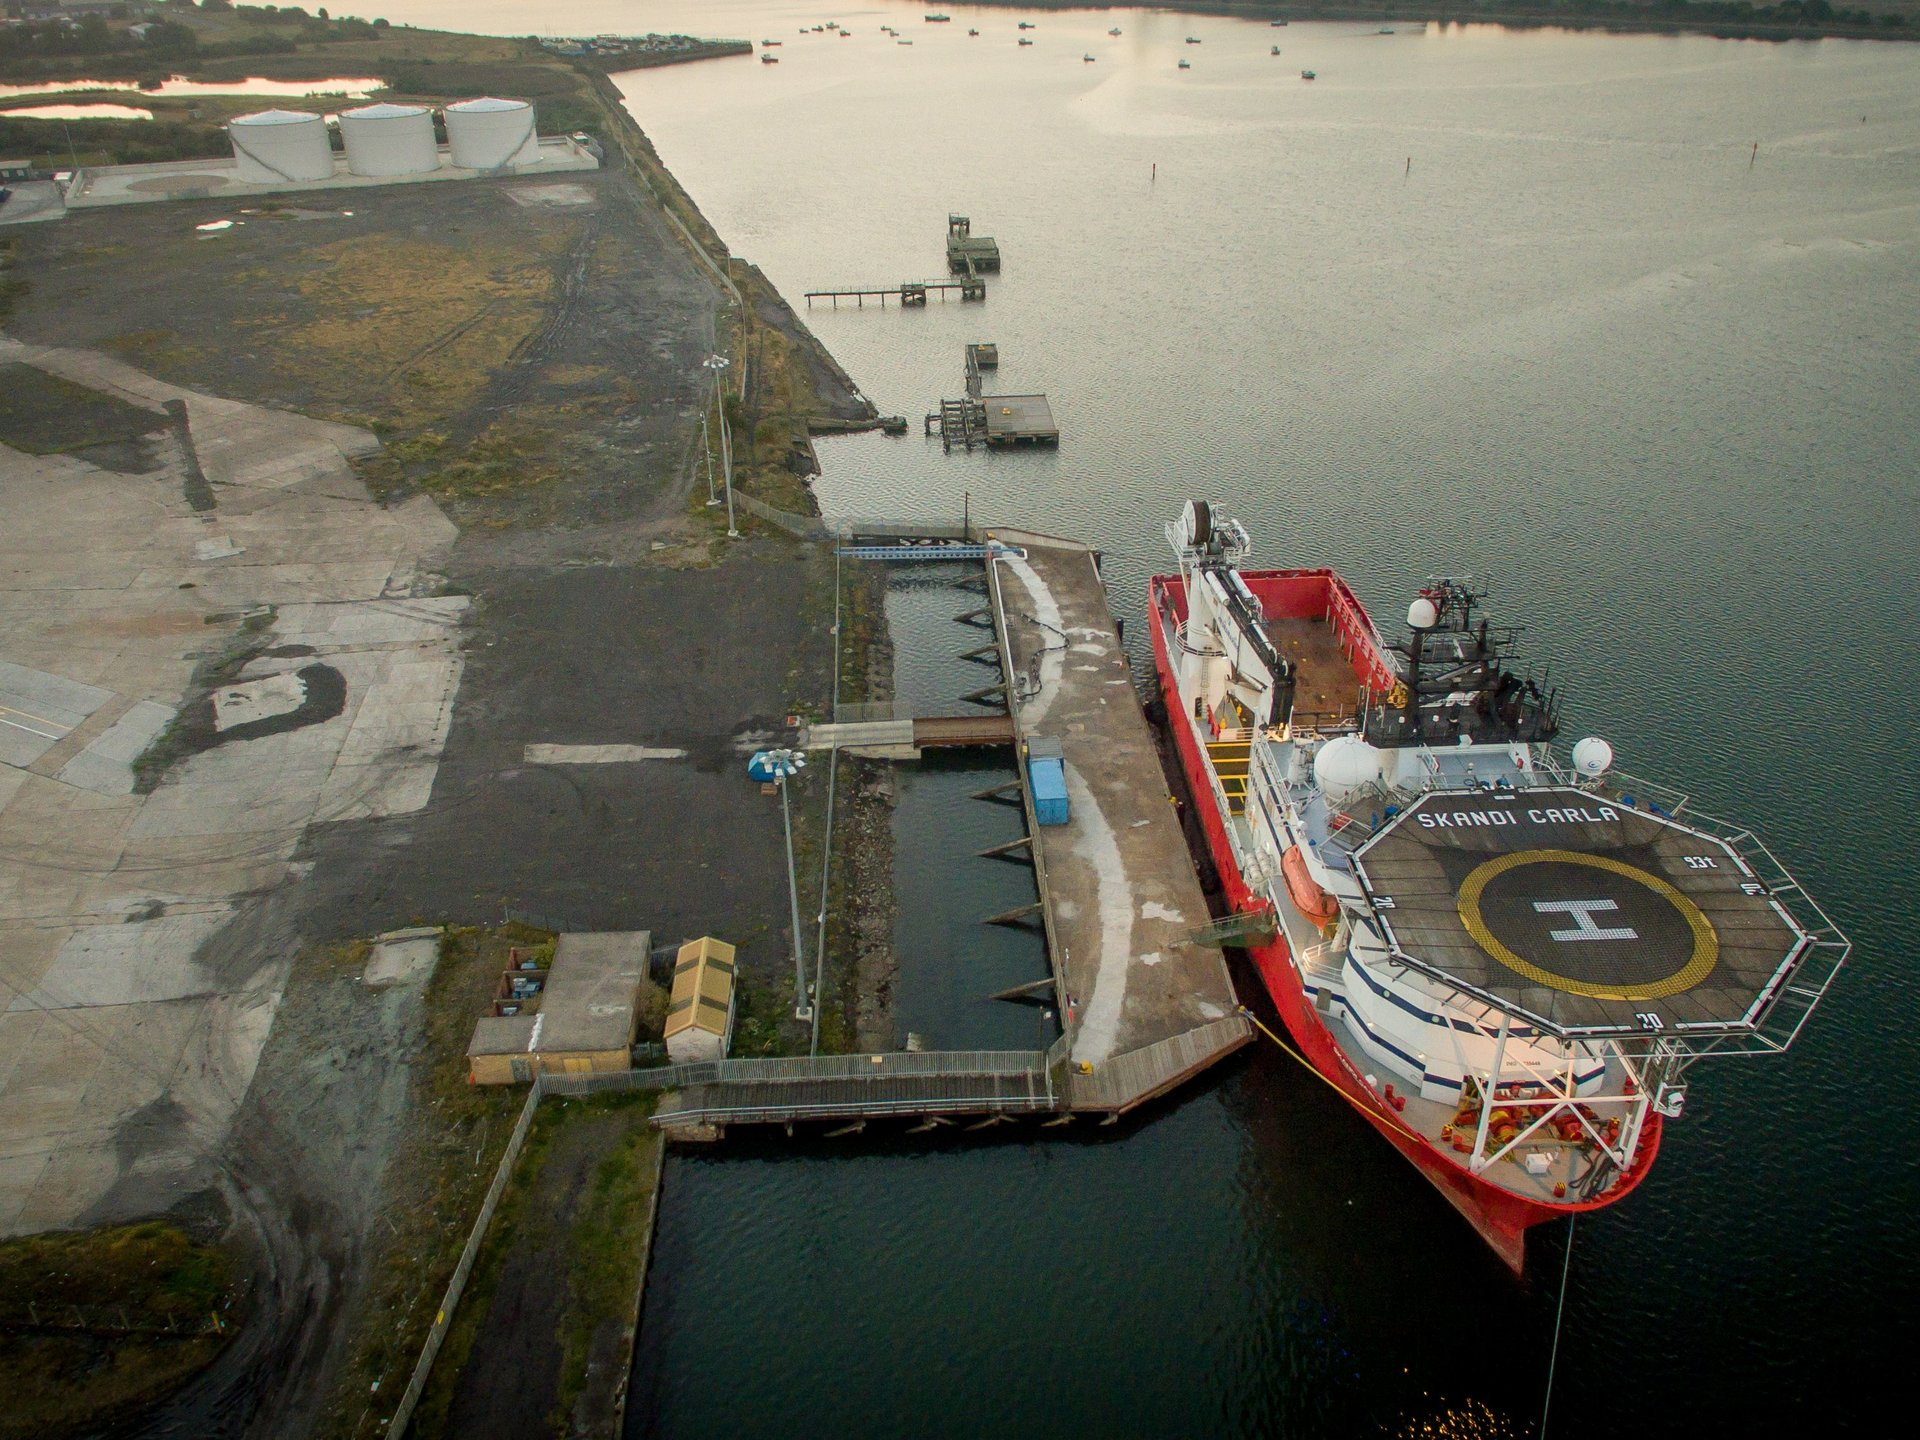 aerial photograph of large marine ship in port from 200ft